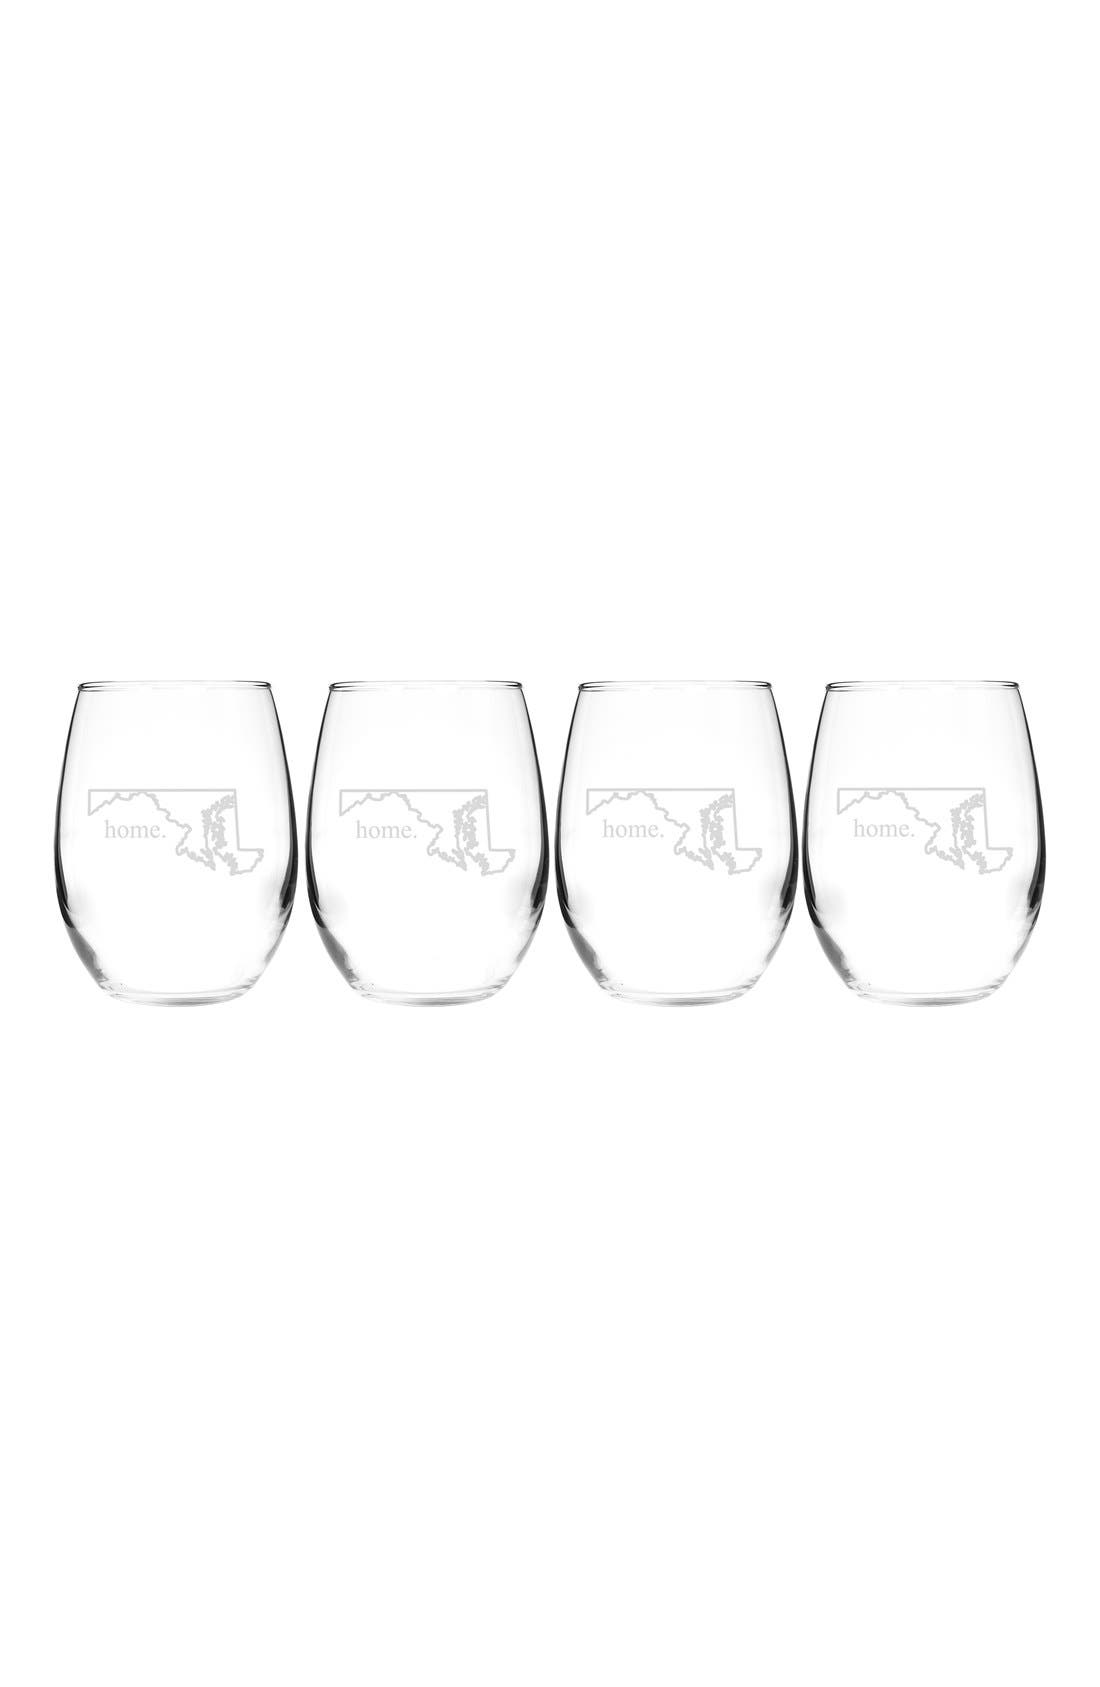 Home State Set of 4 Stemless Wine Glasses,                             Main thumbnail 21, color,